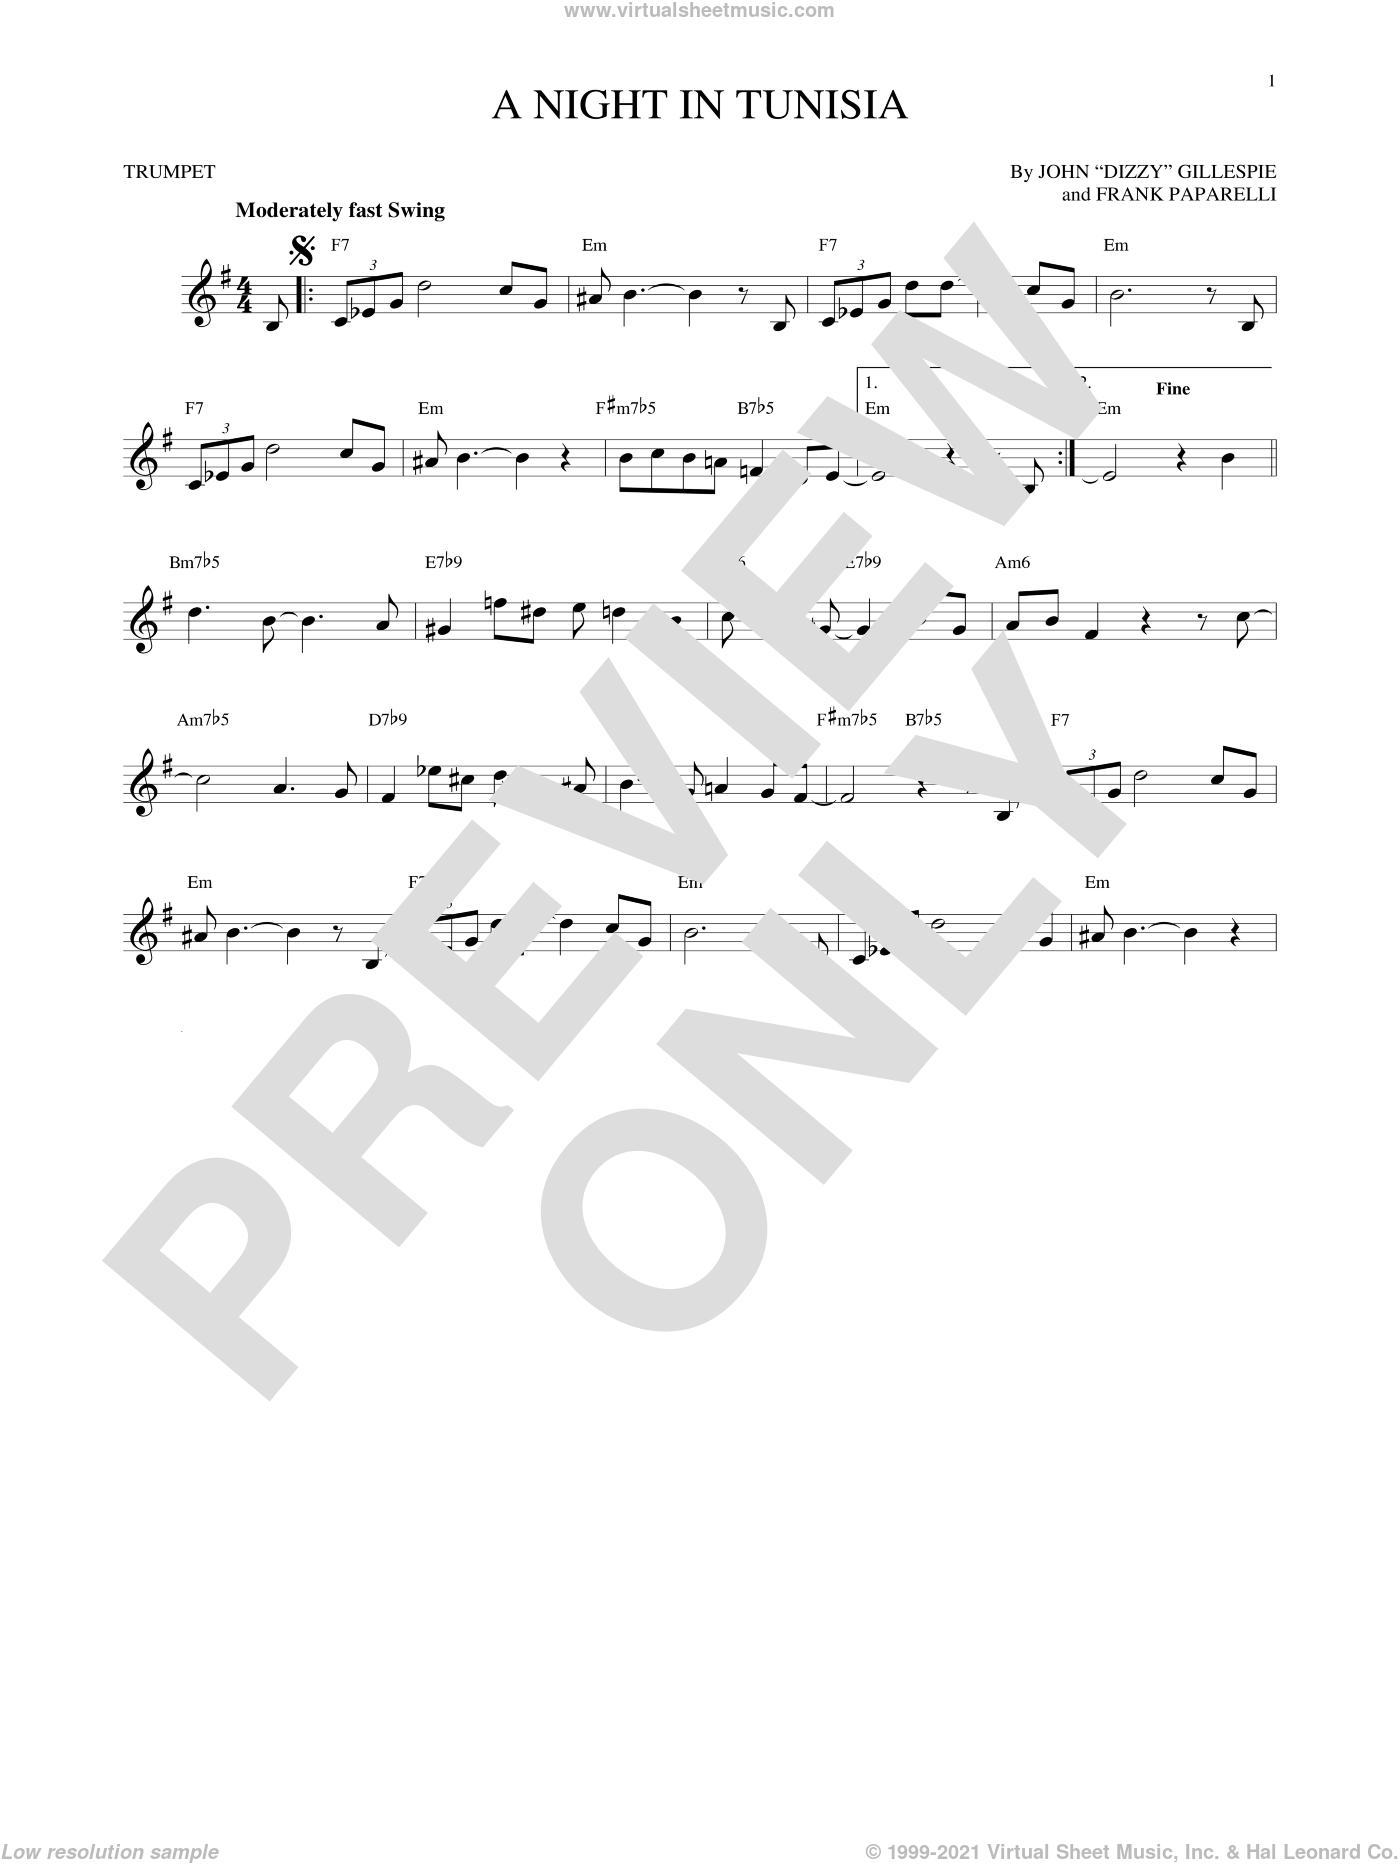 A Night In Tunisia sheet music for trumpet solo by Dizzy Gillespie and Frank Paparelli, intermediate skill level